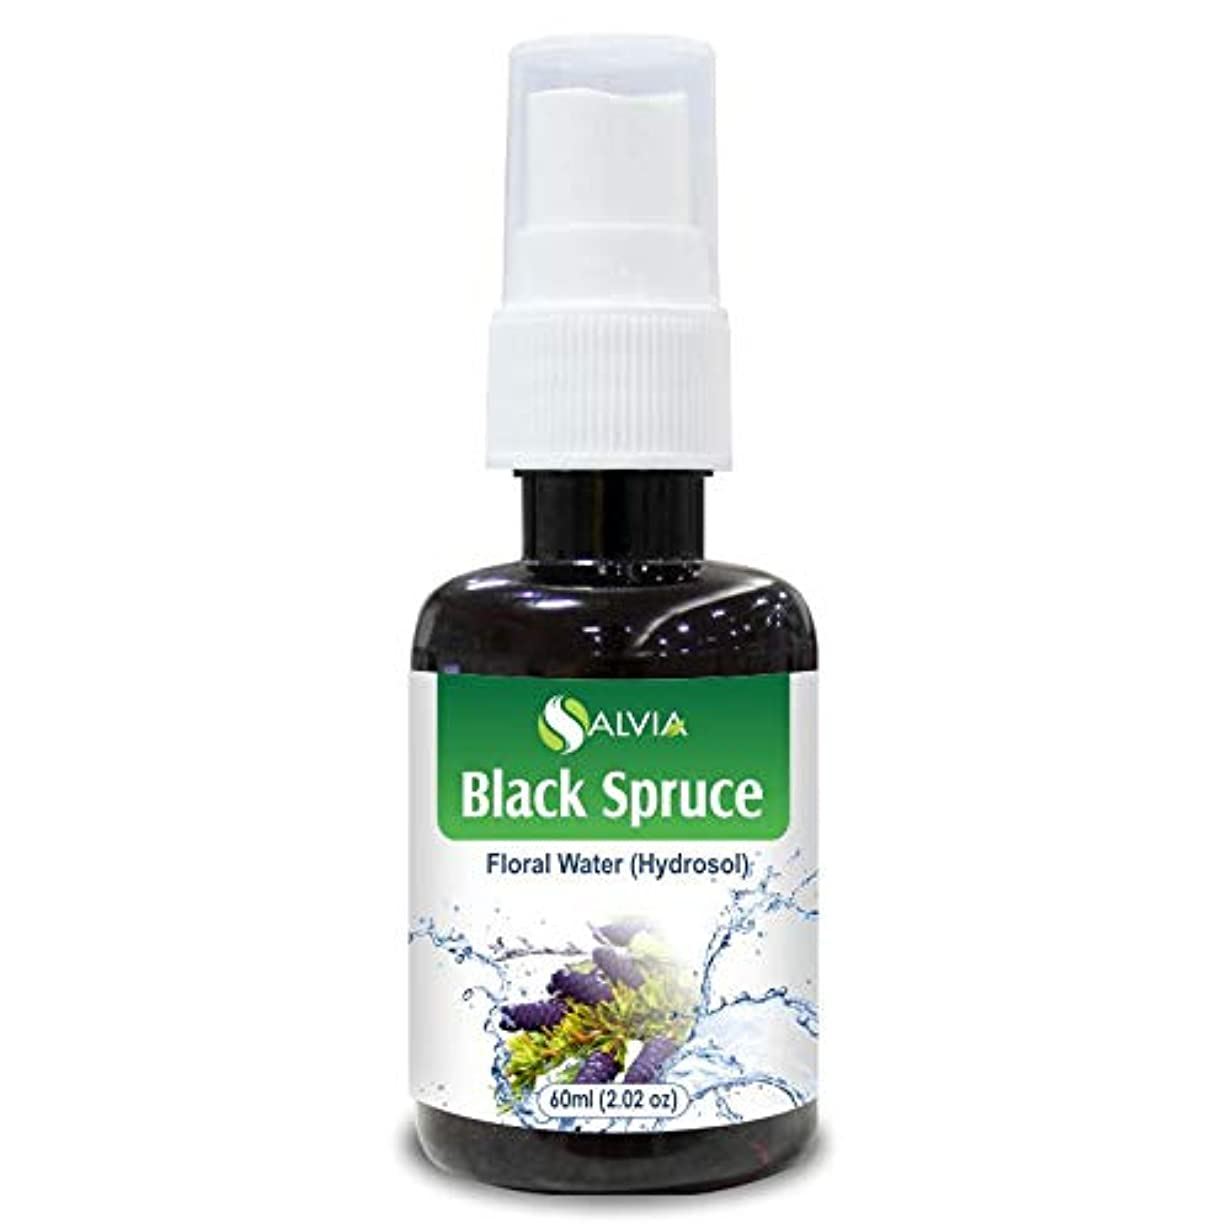 Black Spruce Floral Water 60ml (Hydrosol) 100% Pure And Natural